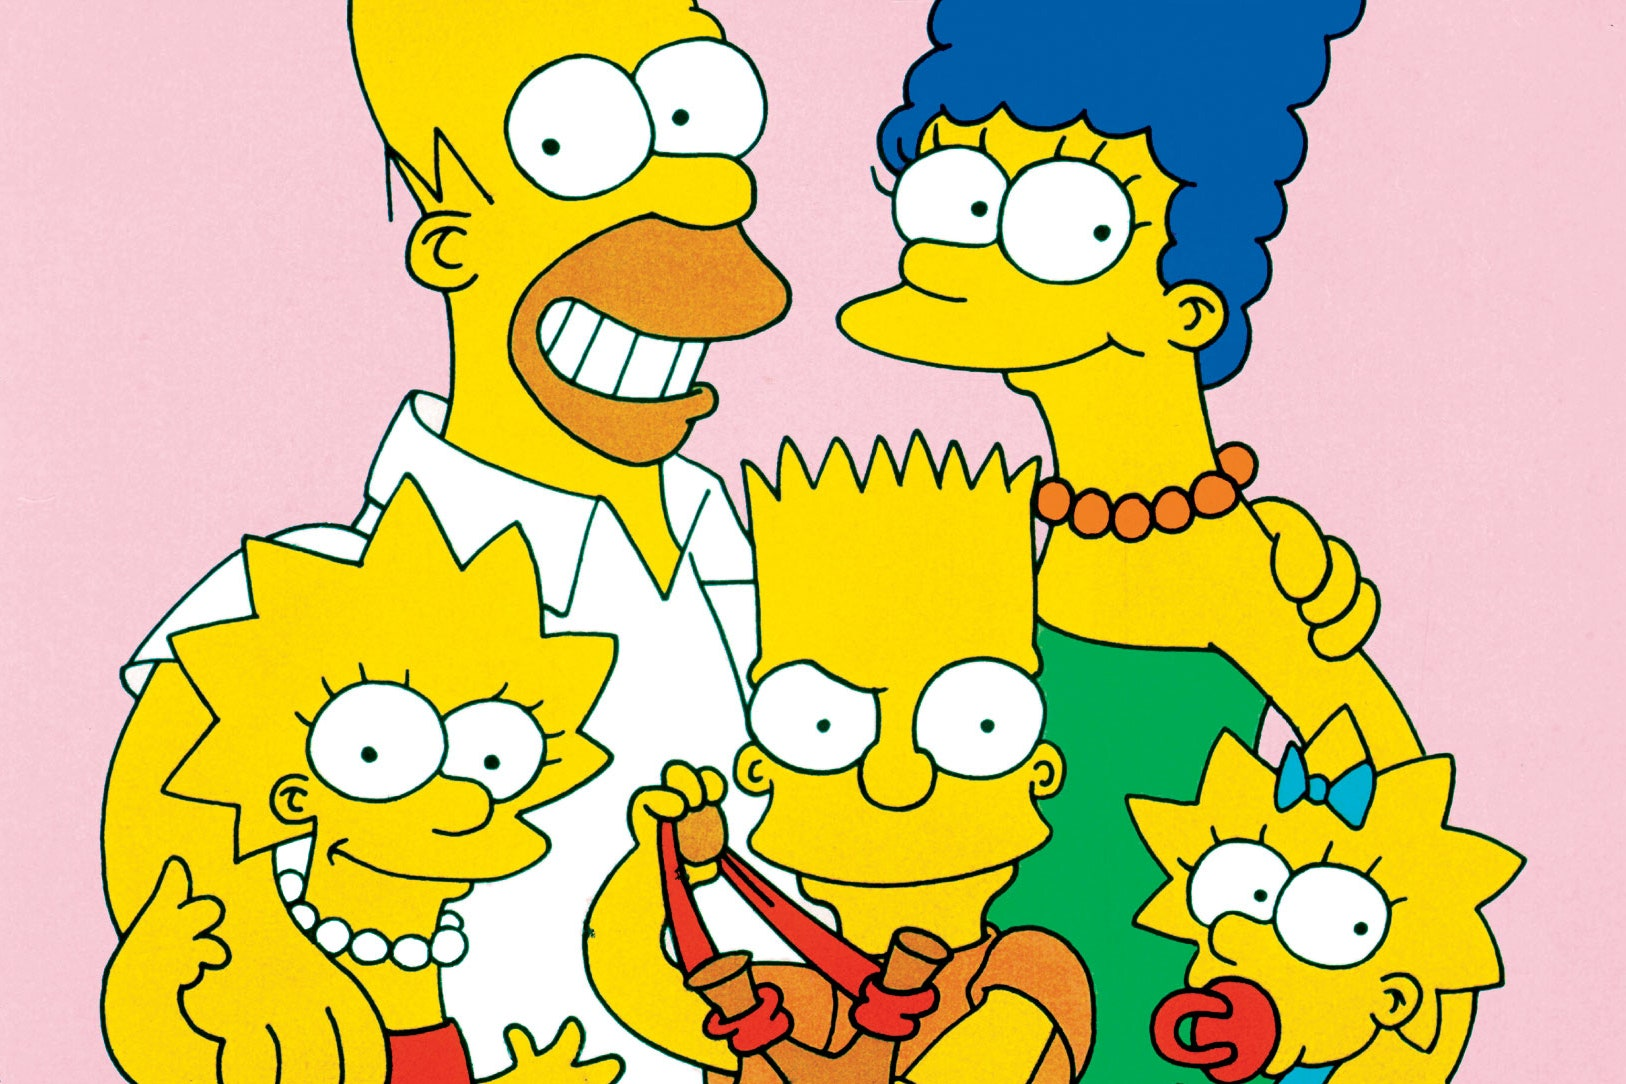 The Simpsons Season 33 Release Date When It Airs And Where To Watch?